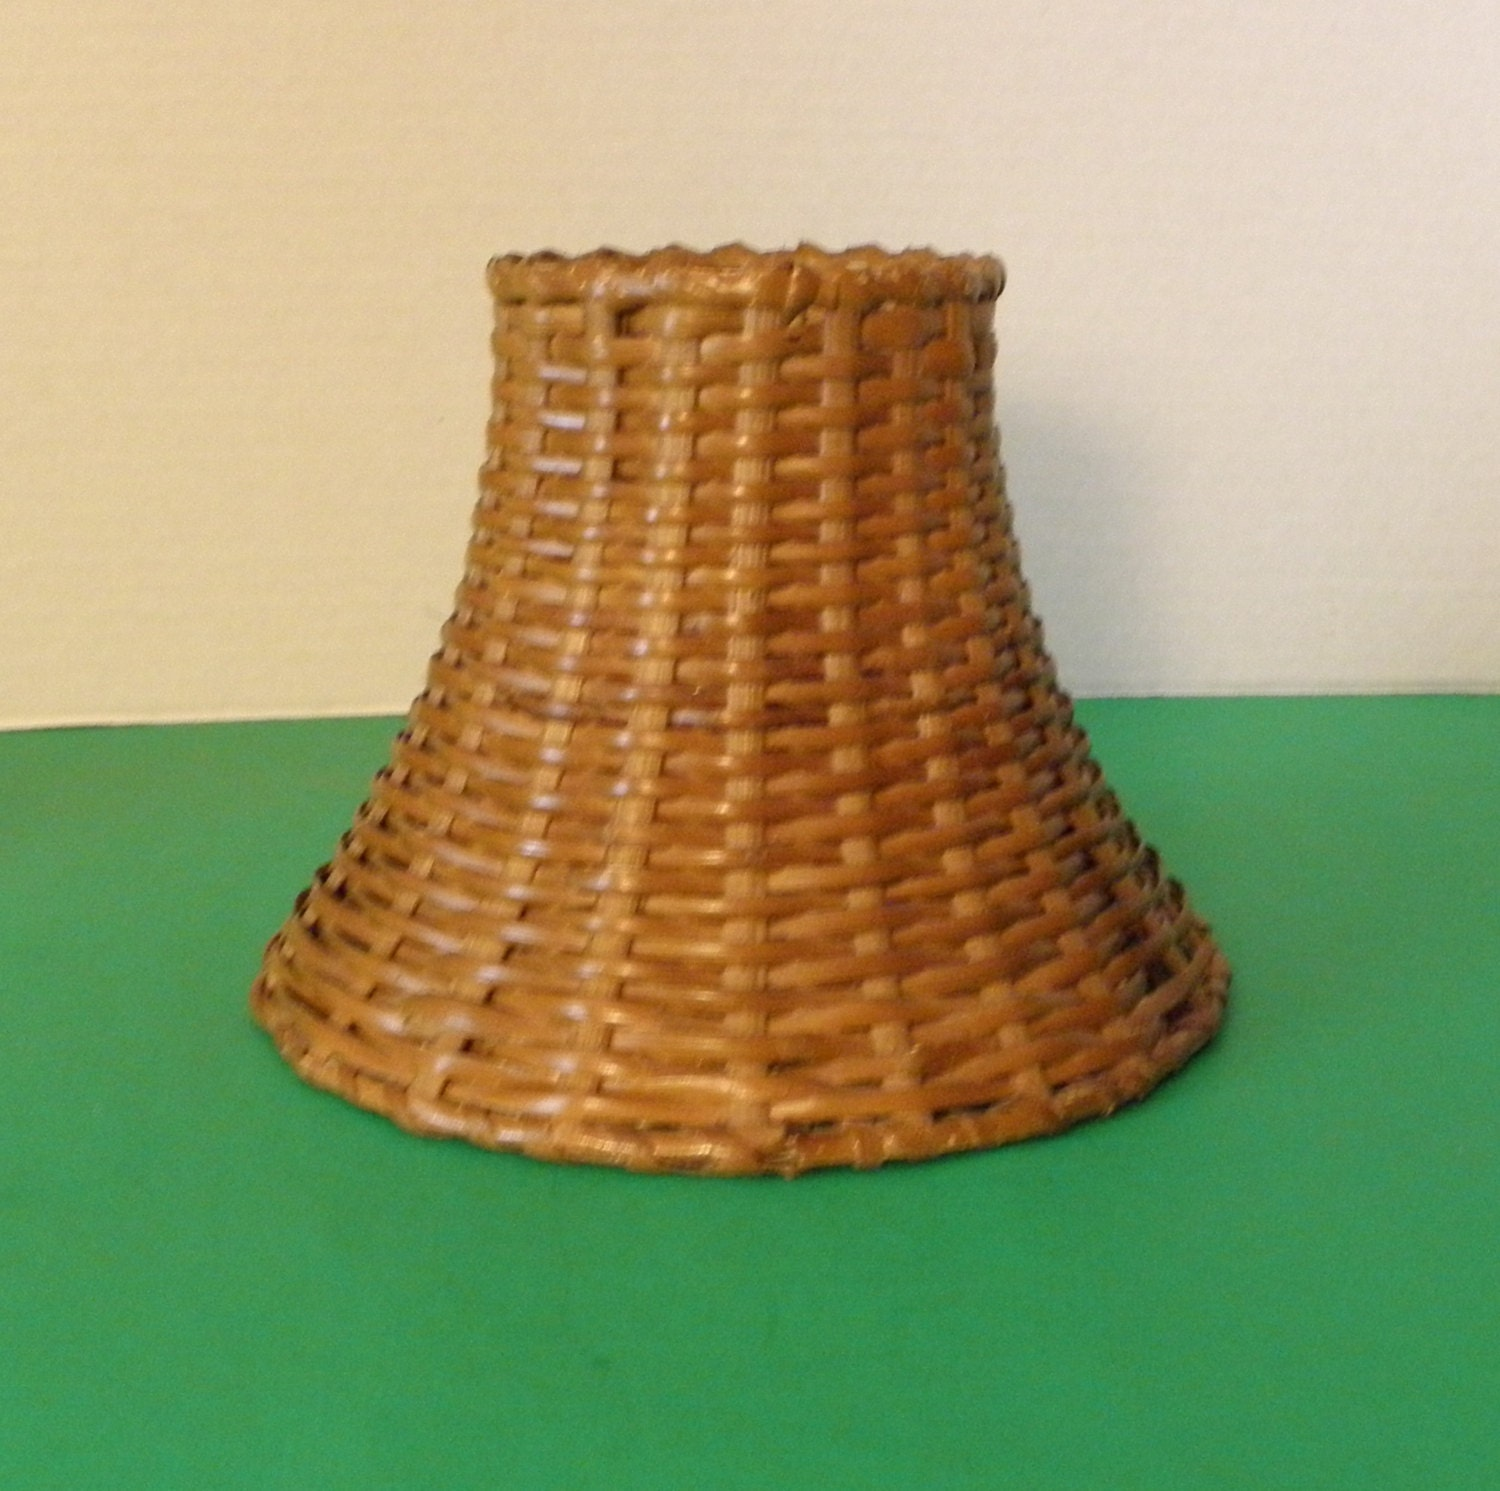 Metal Clip On Lamp Shade: Woven Wicker Clip On Lamp Shade MINI